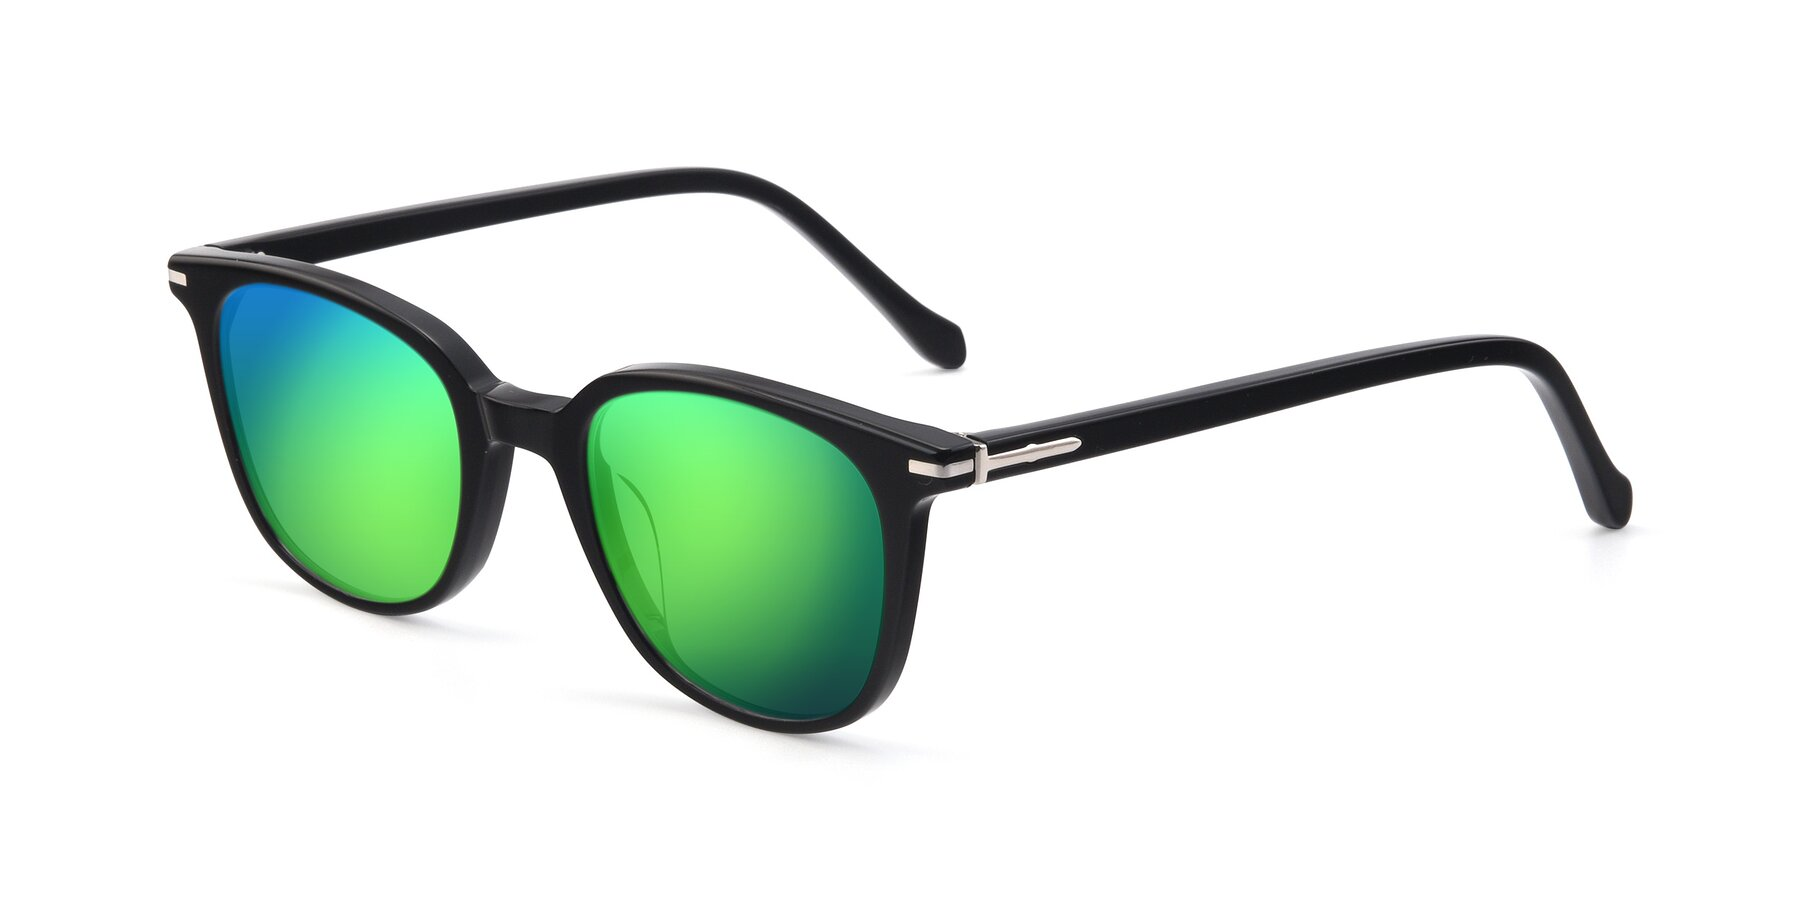 Angle of 17562 in Black with Green Mirrored Lenses